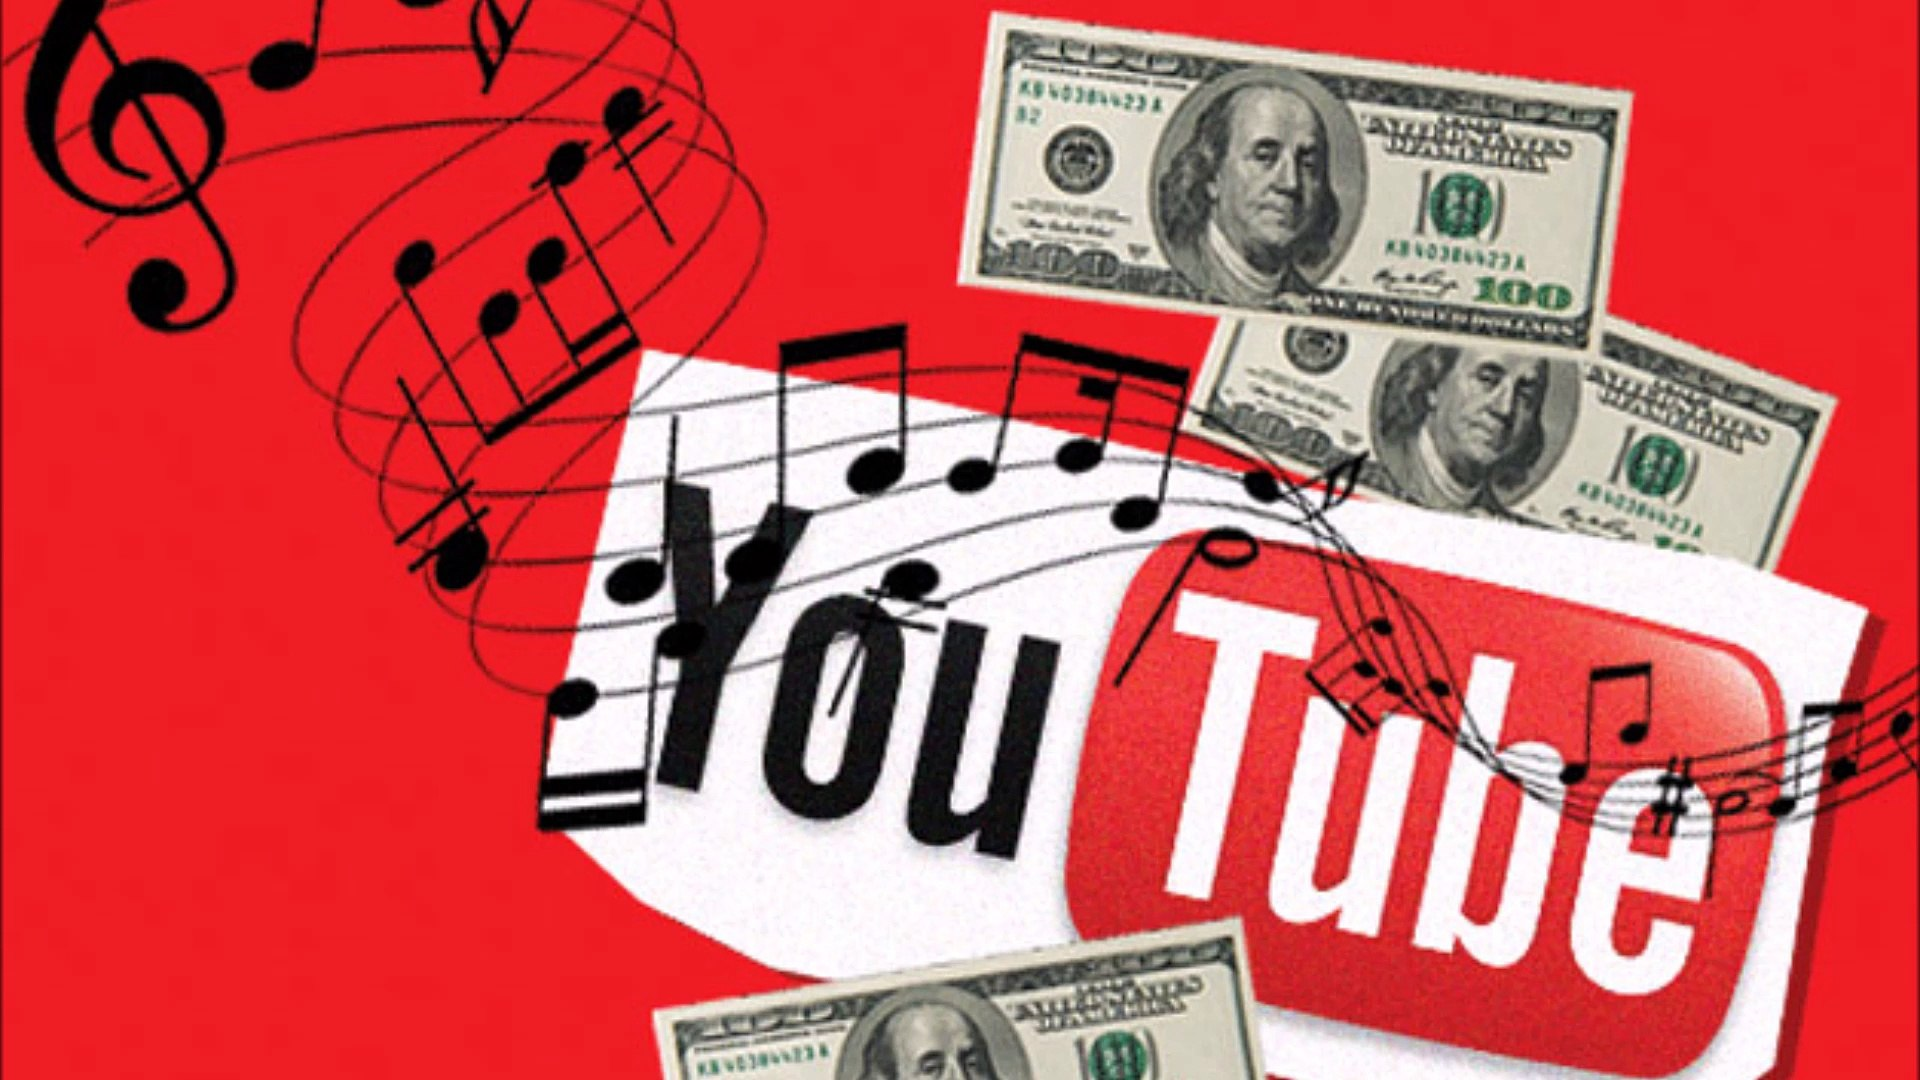 How to make money on YouTube musicians?